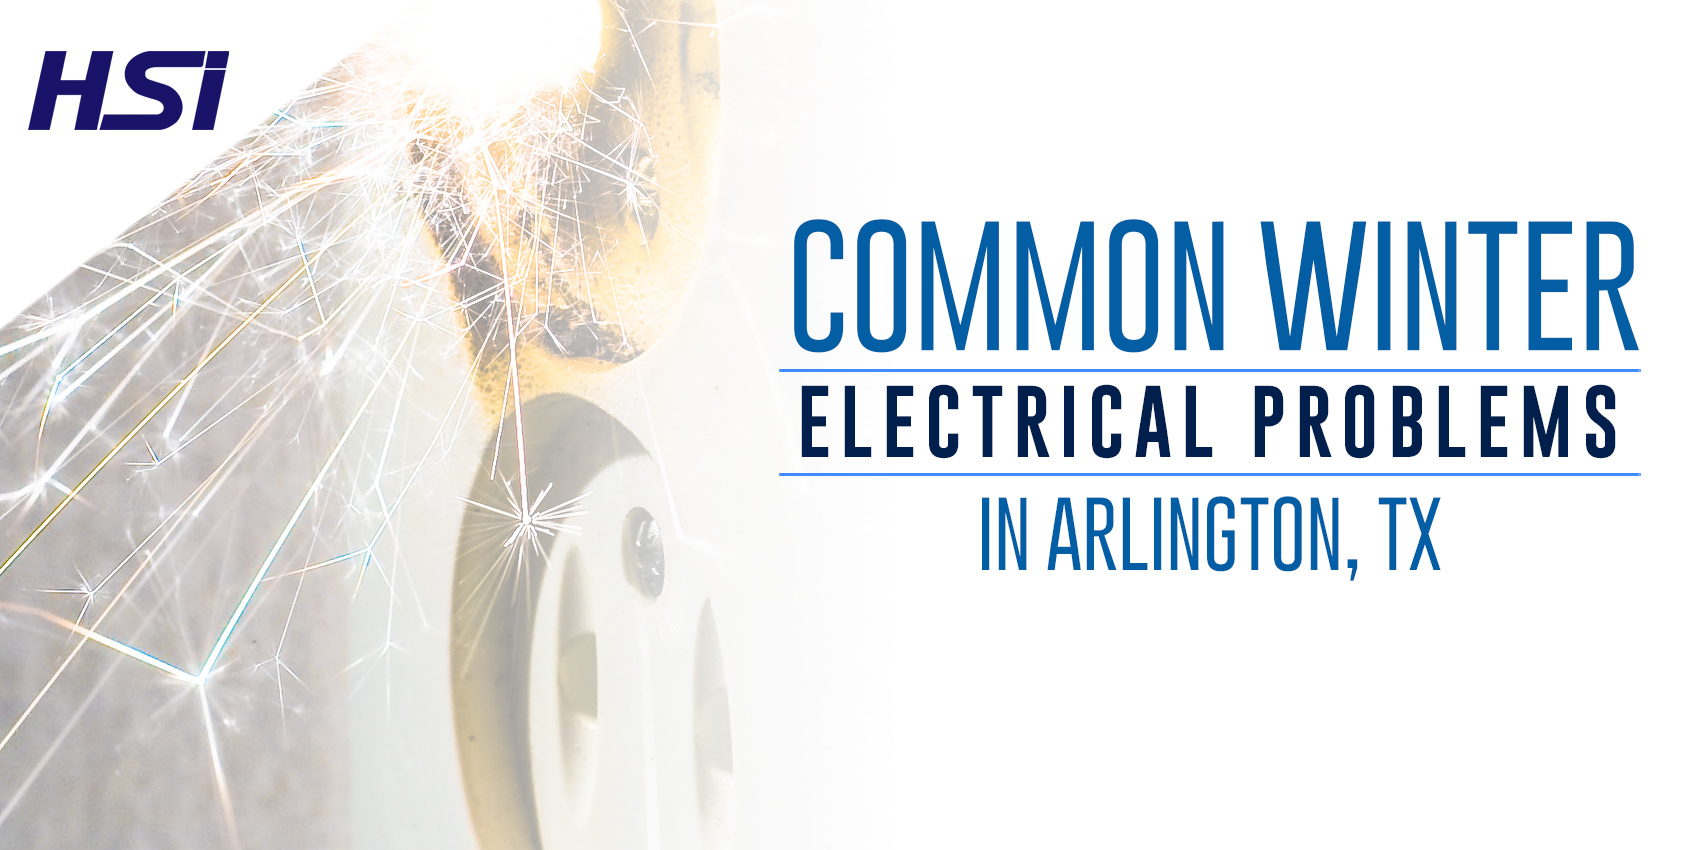 Common Winter Electrical Problems in Arlington, TX